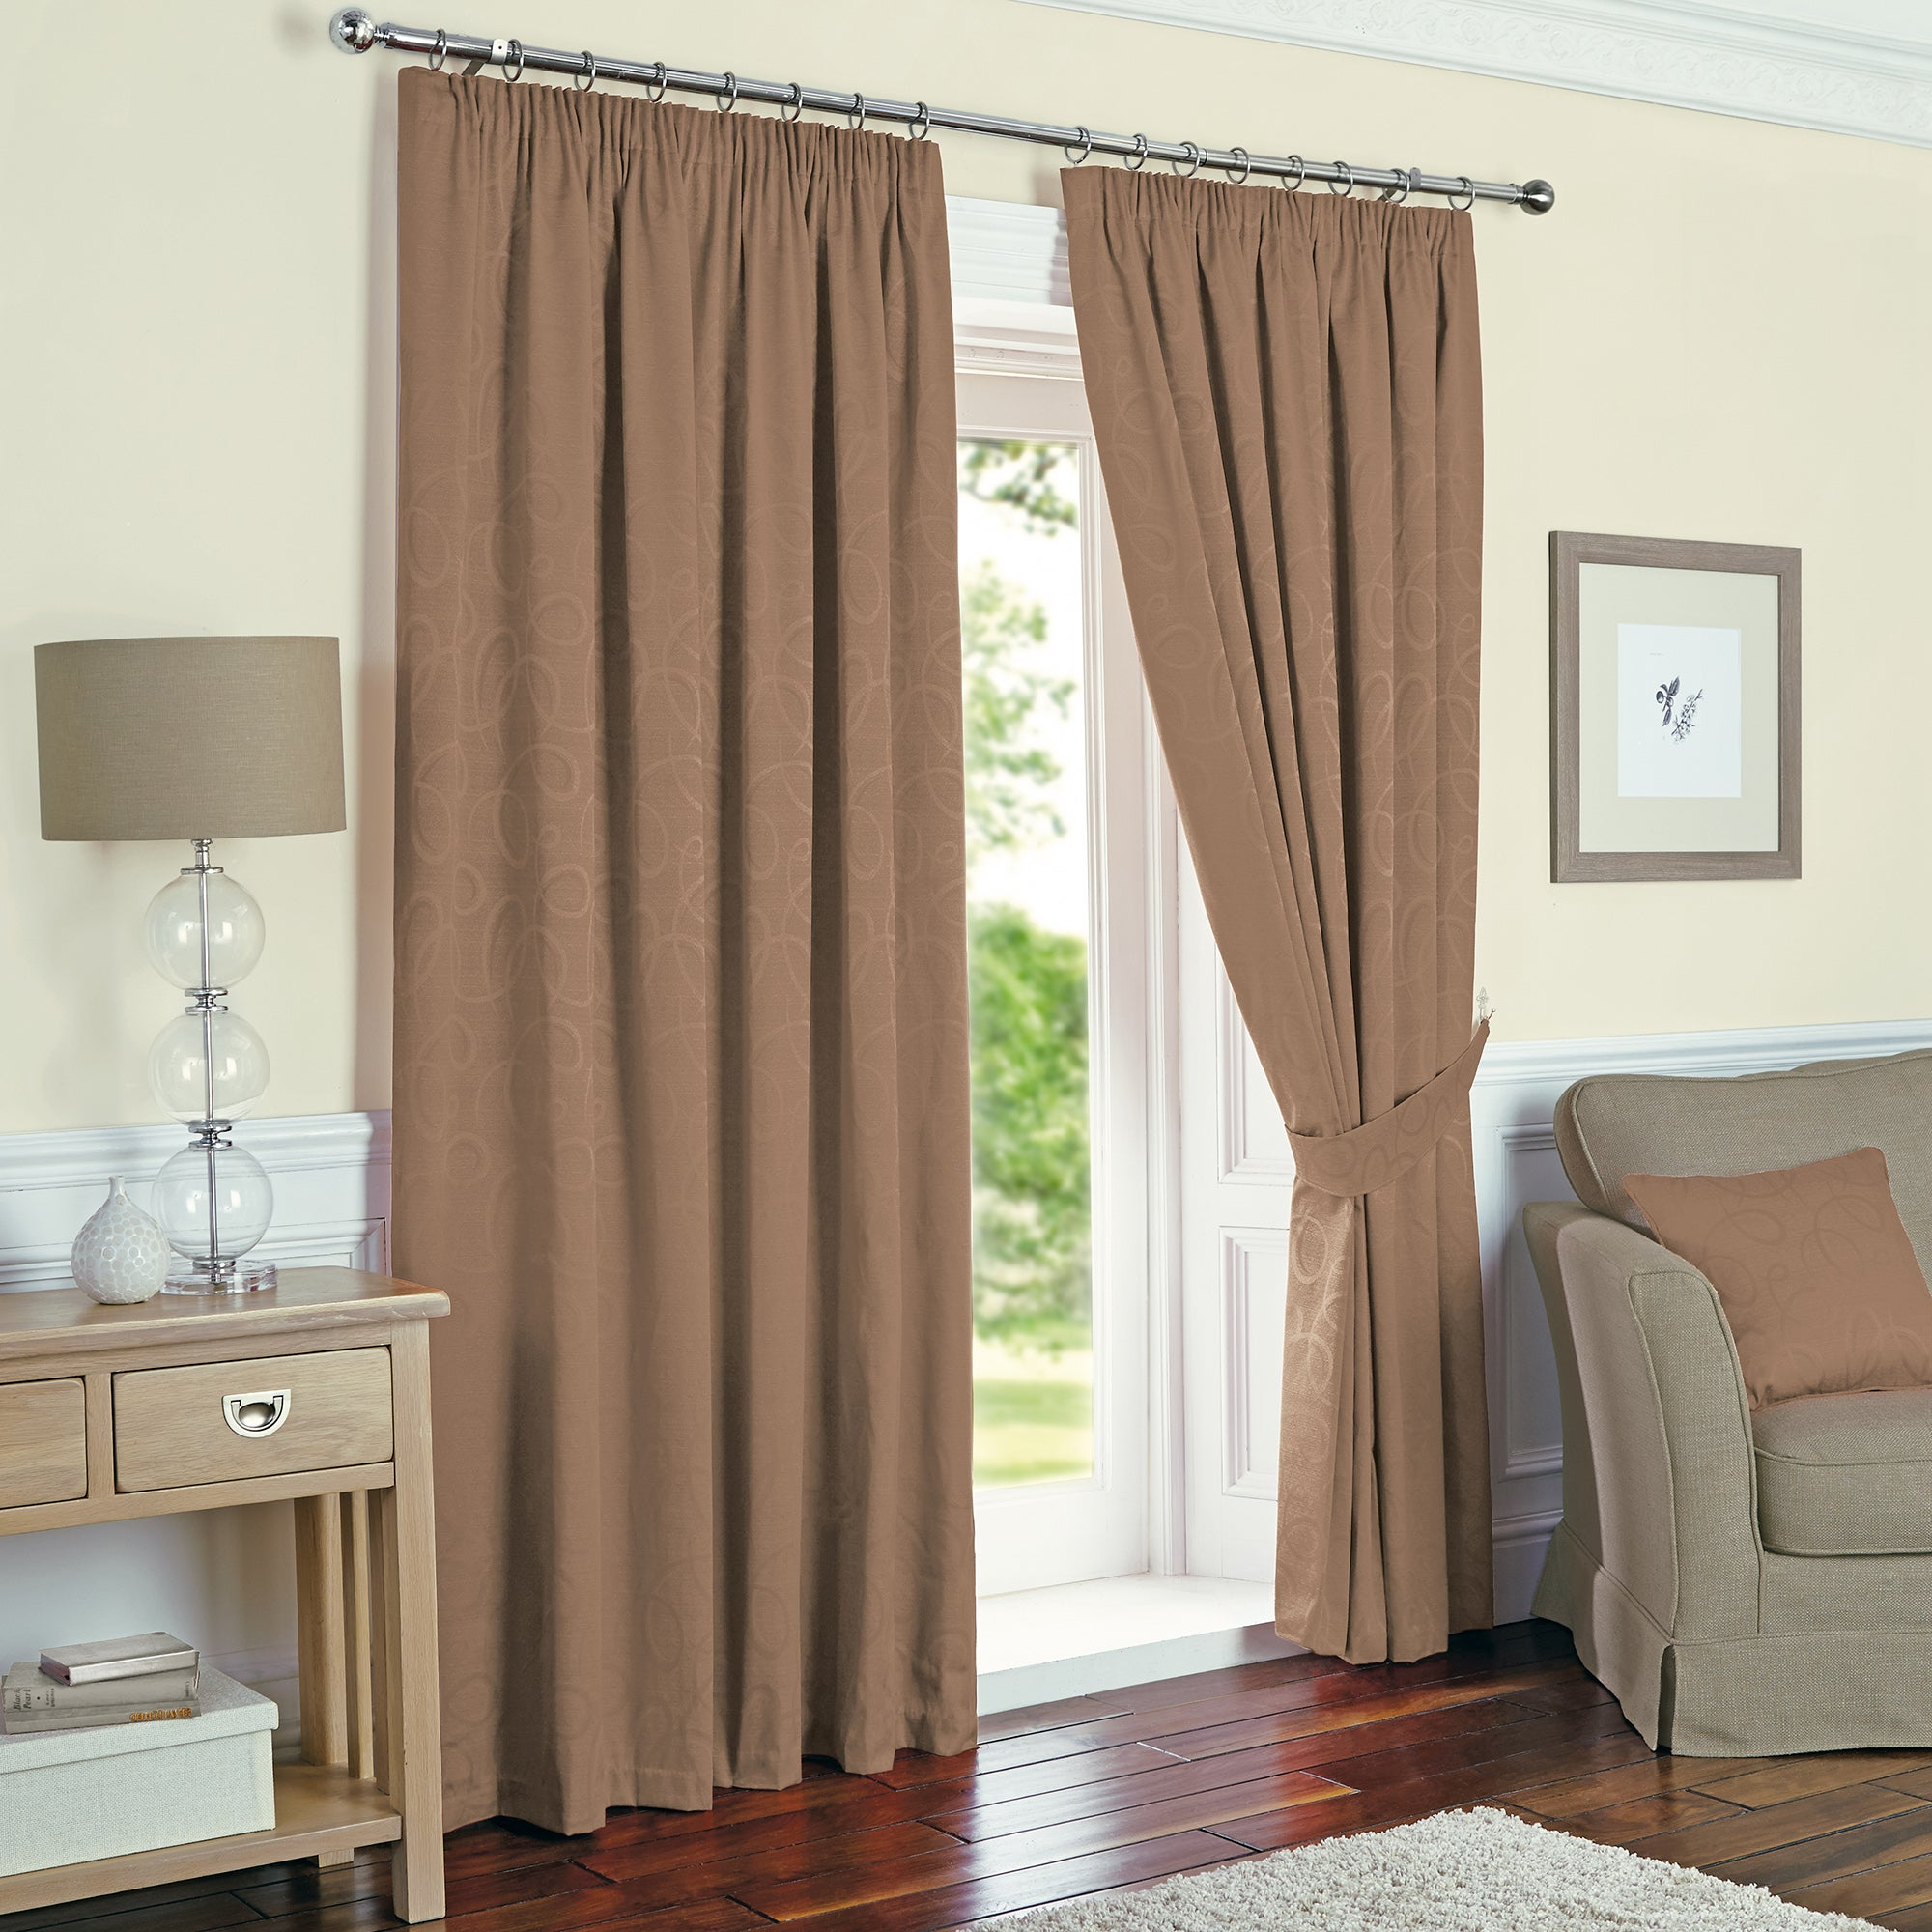 Toledo Mocha Thermal Pencil Pleat Curtains